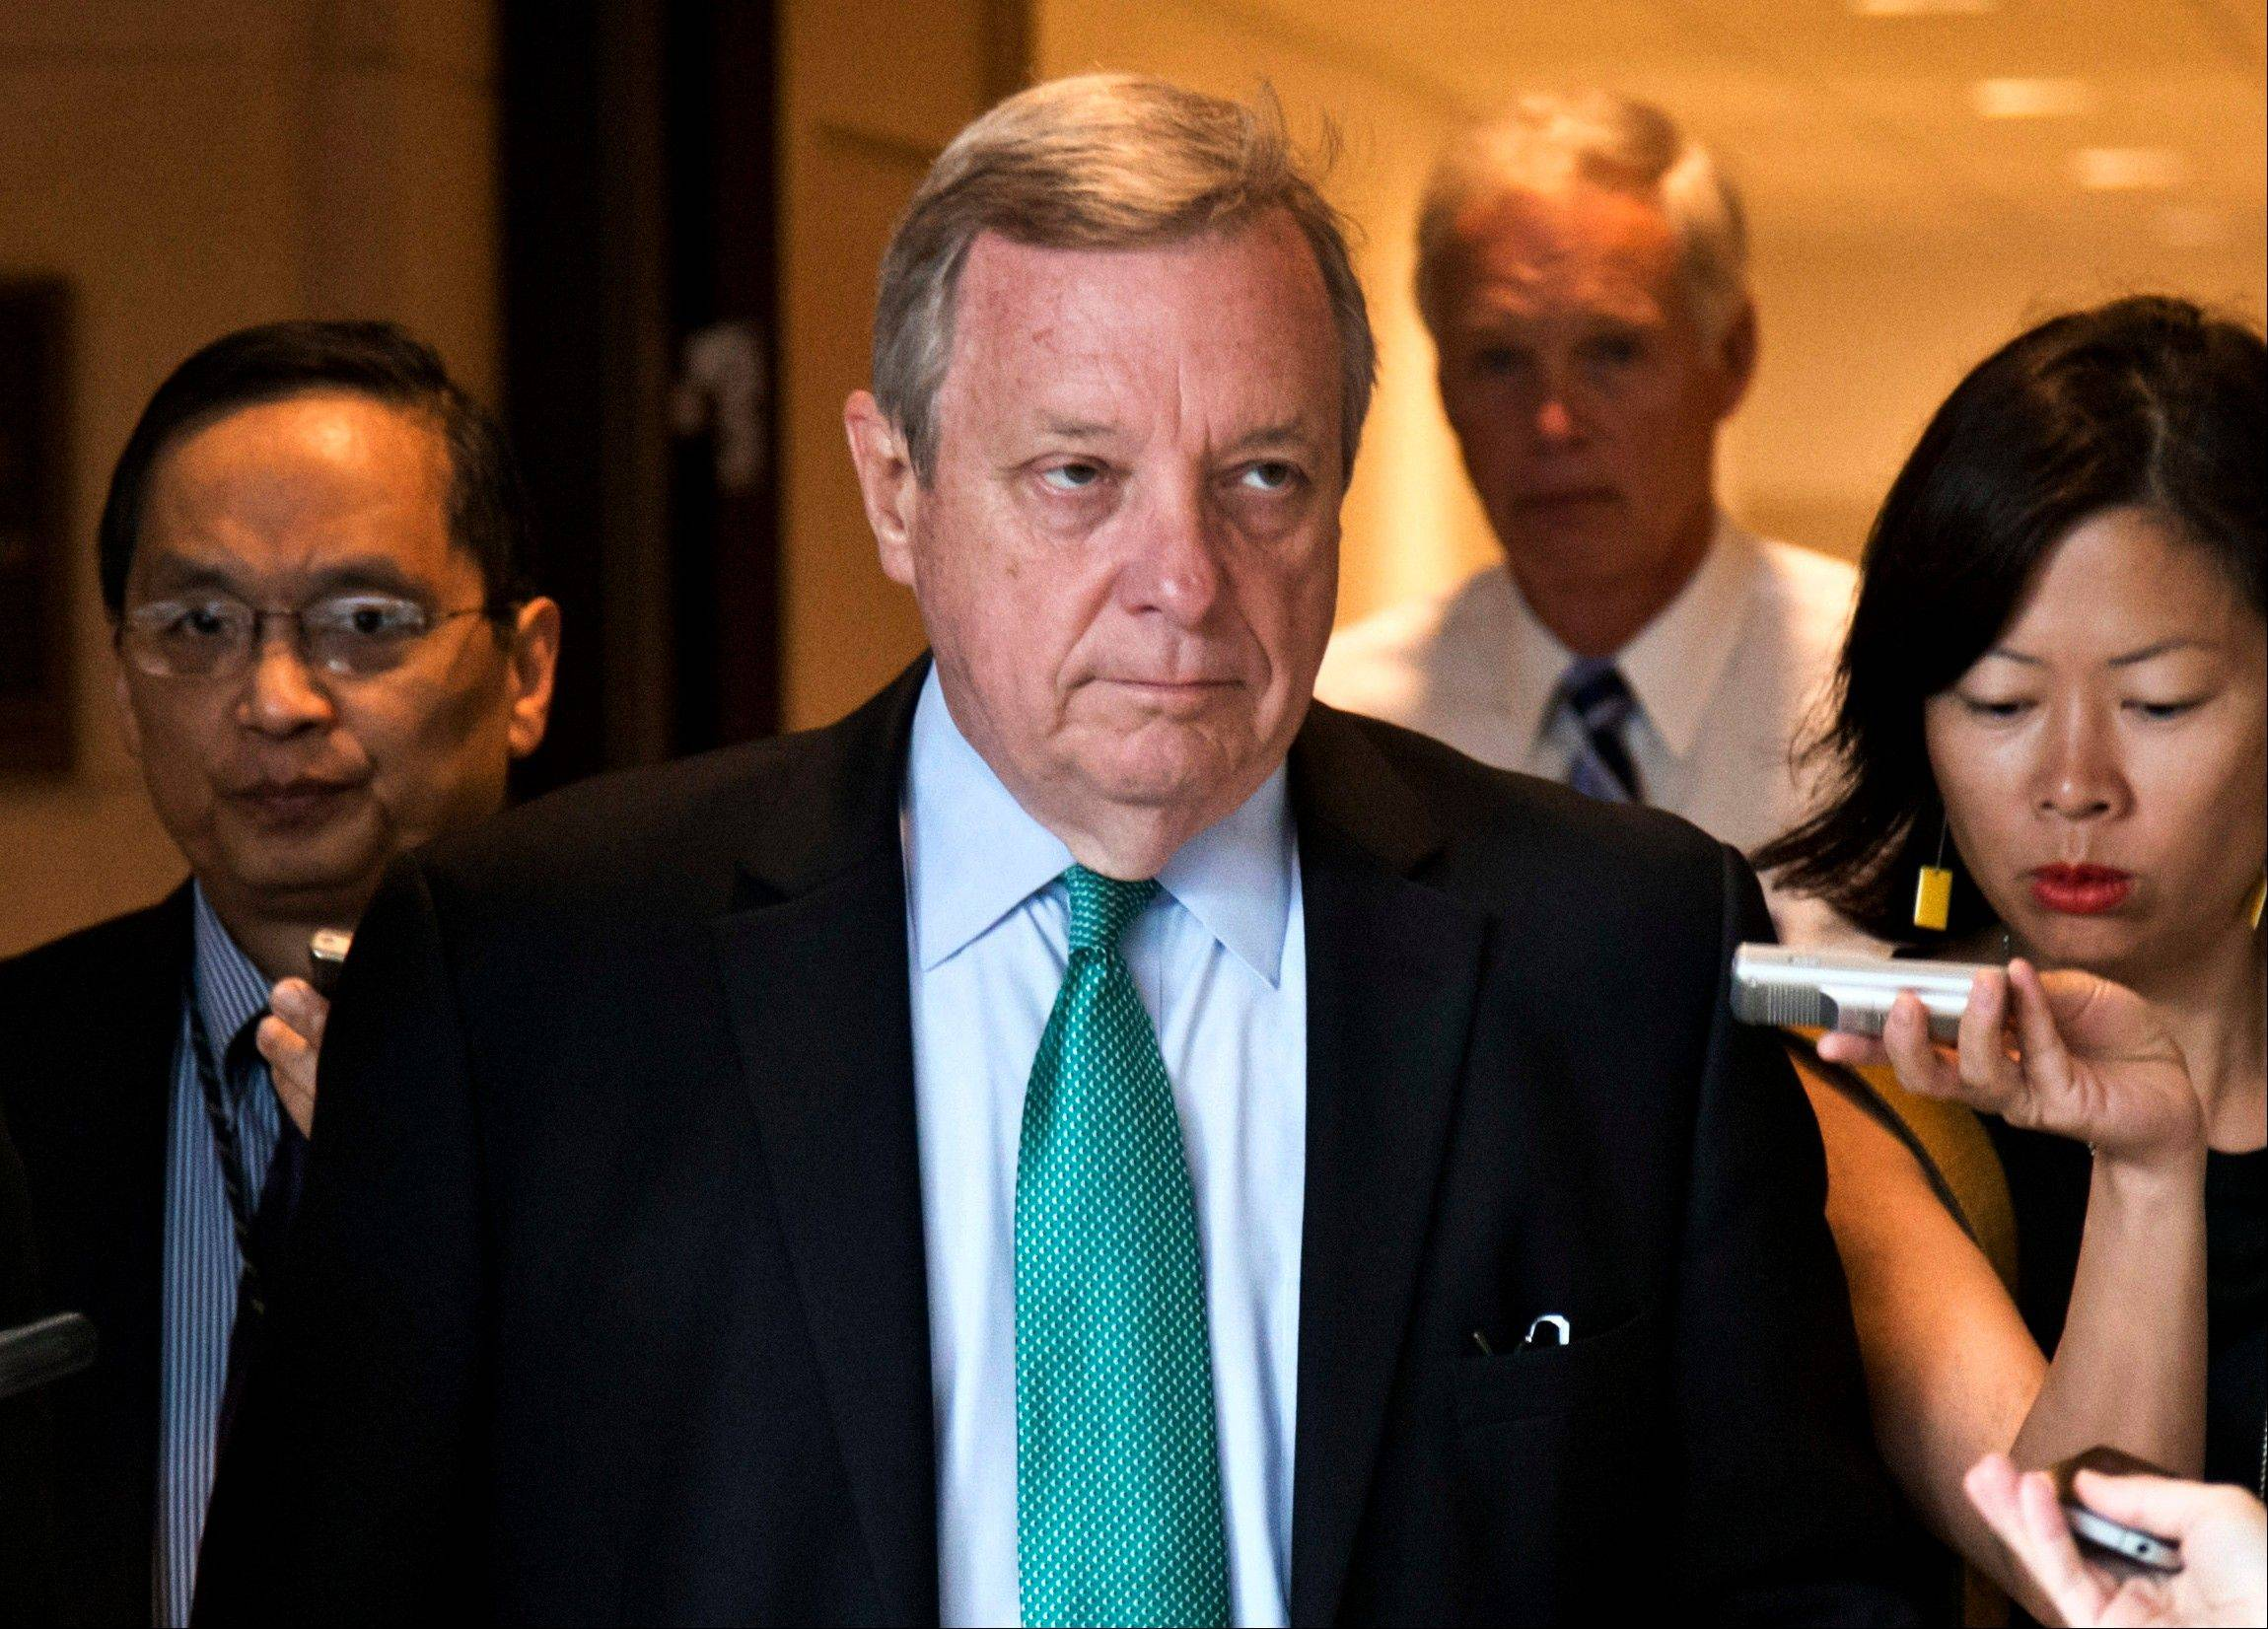 U.S, Sen. Dick Durbin said Friday that he�s working with Illinois lawmakers to raise the state�s minimum wage, which now is $8.25 an hour.